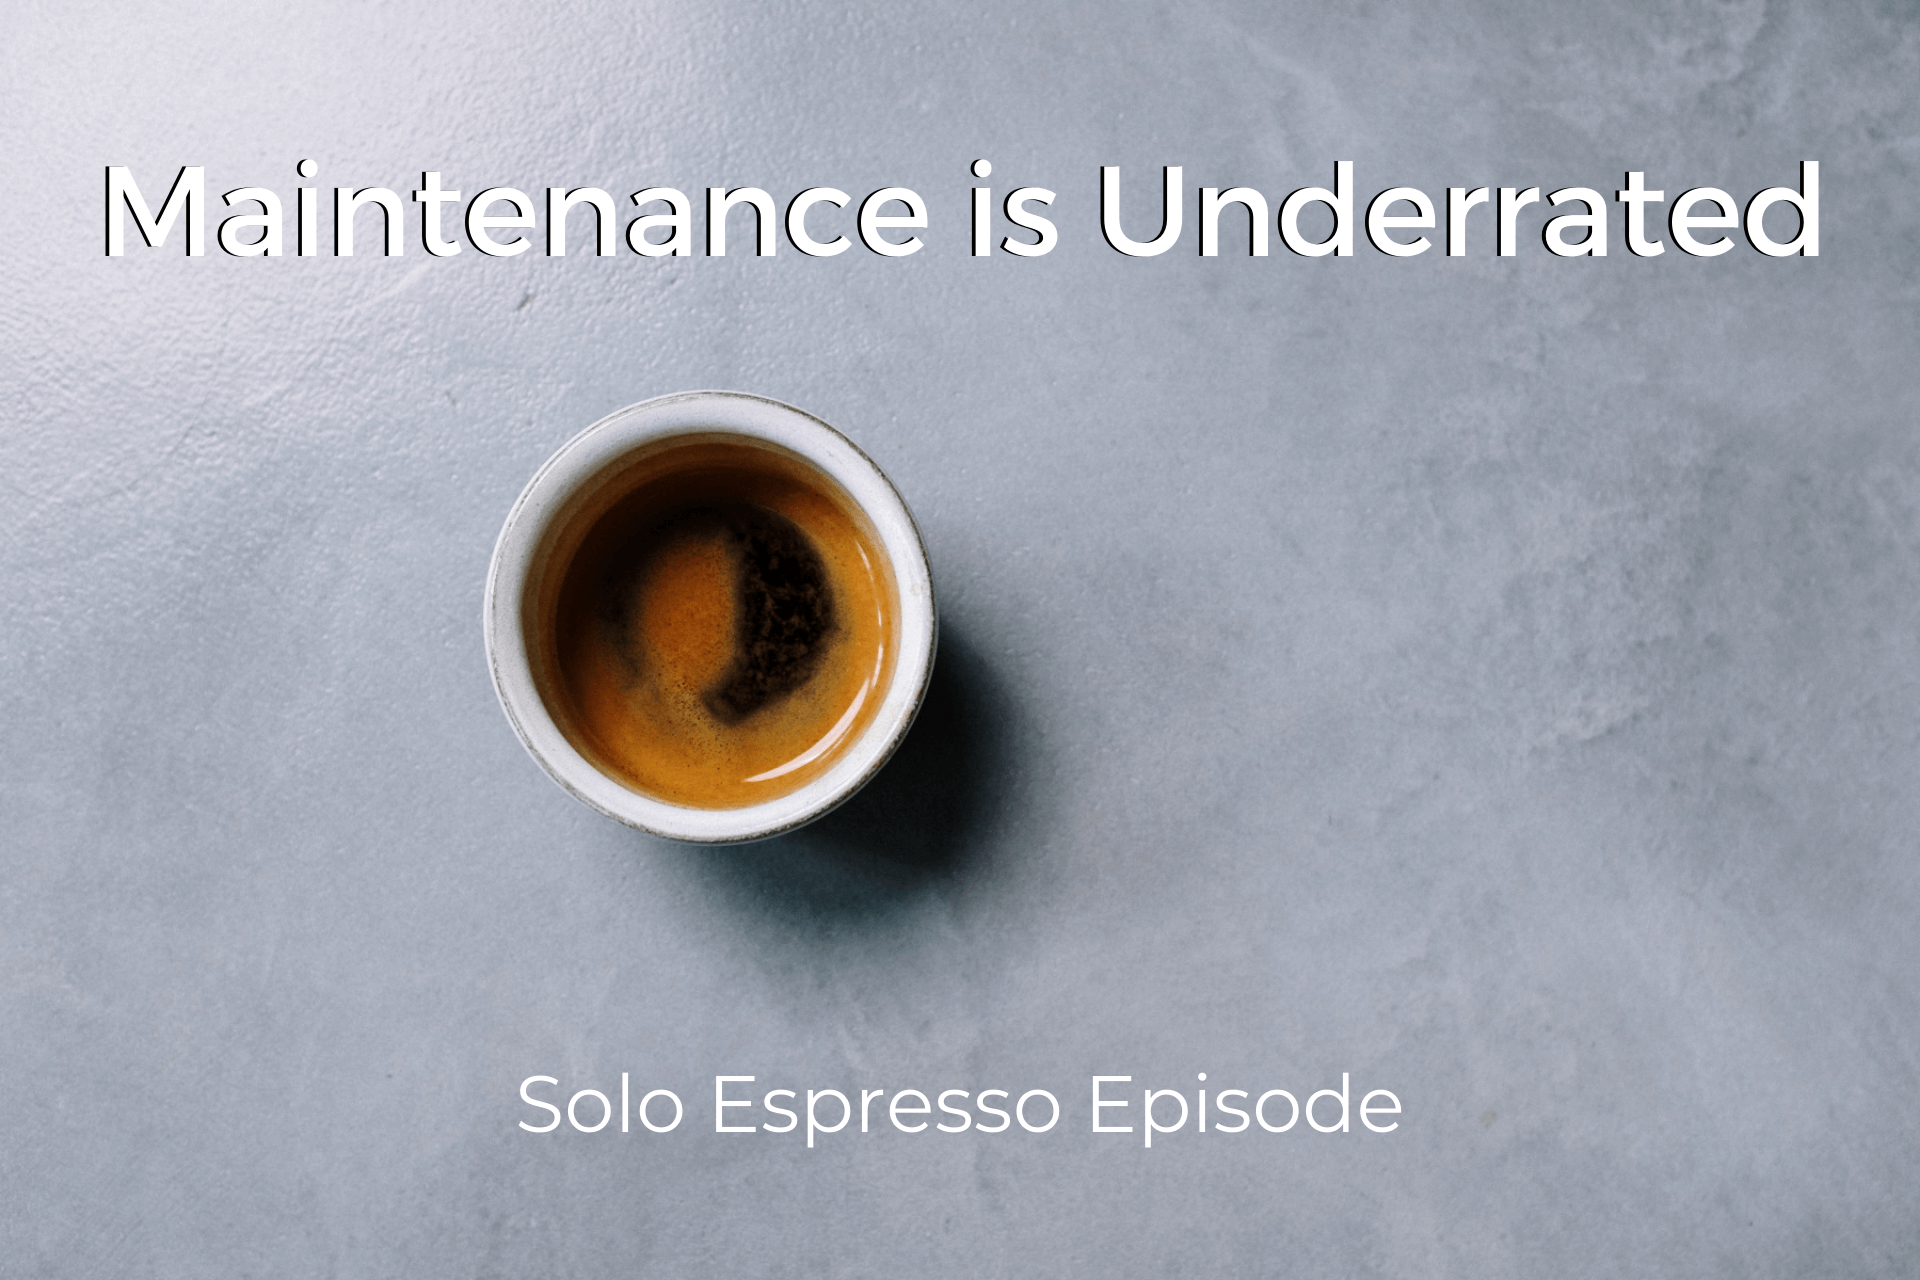 Maintenance is Underrated (Dealing with Goliath Podcast #028)